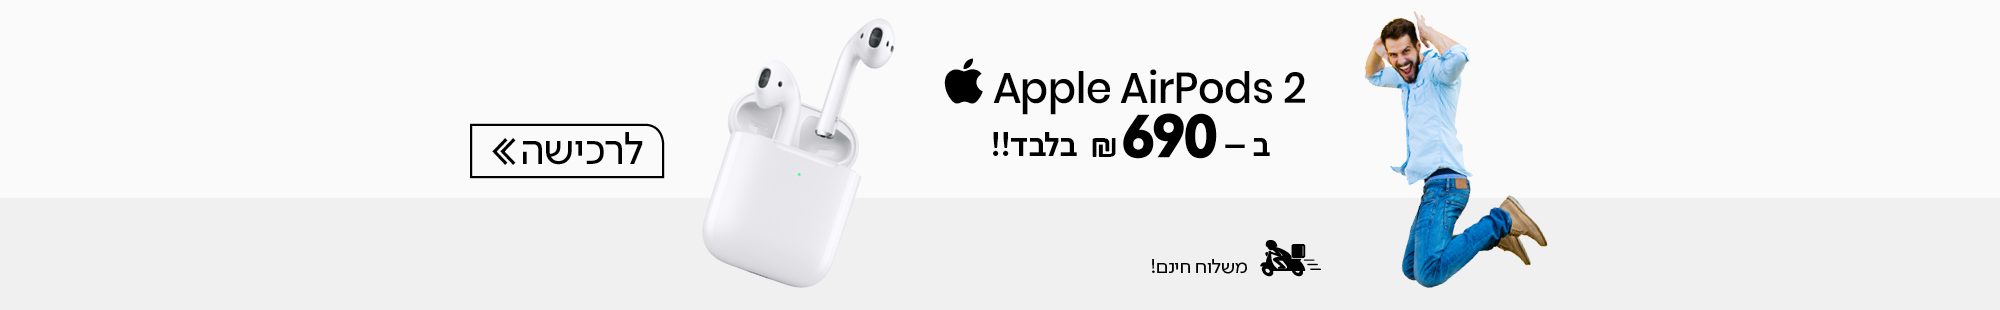 14136_Airpods2_690_banner_web+mobile_c